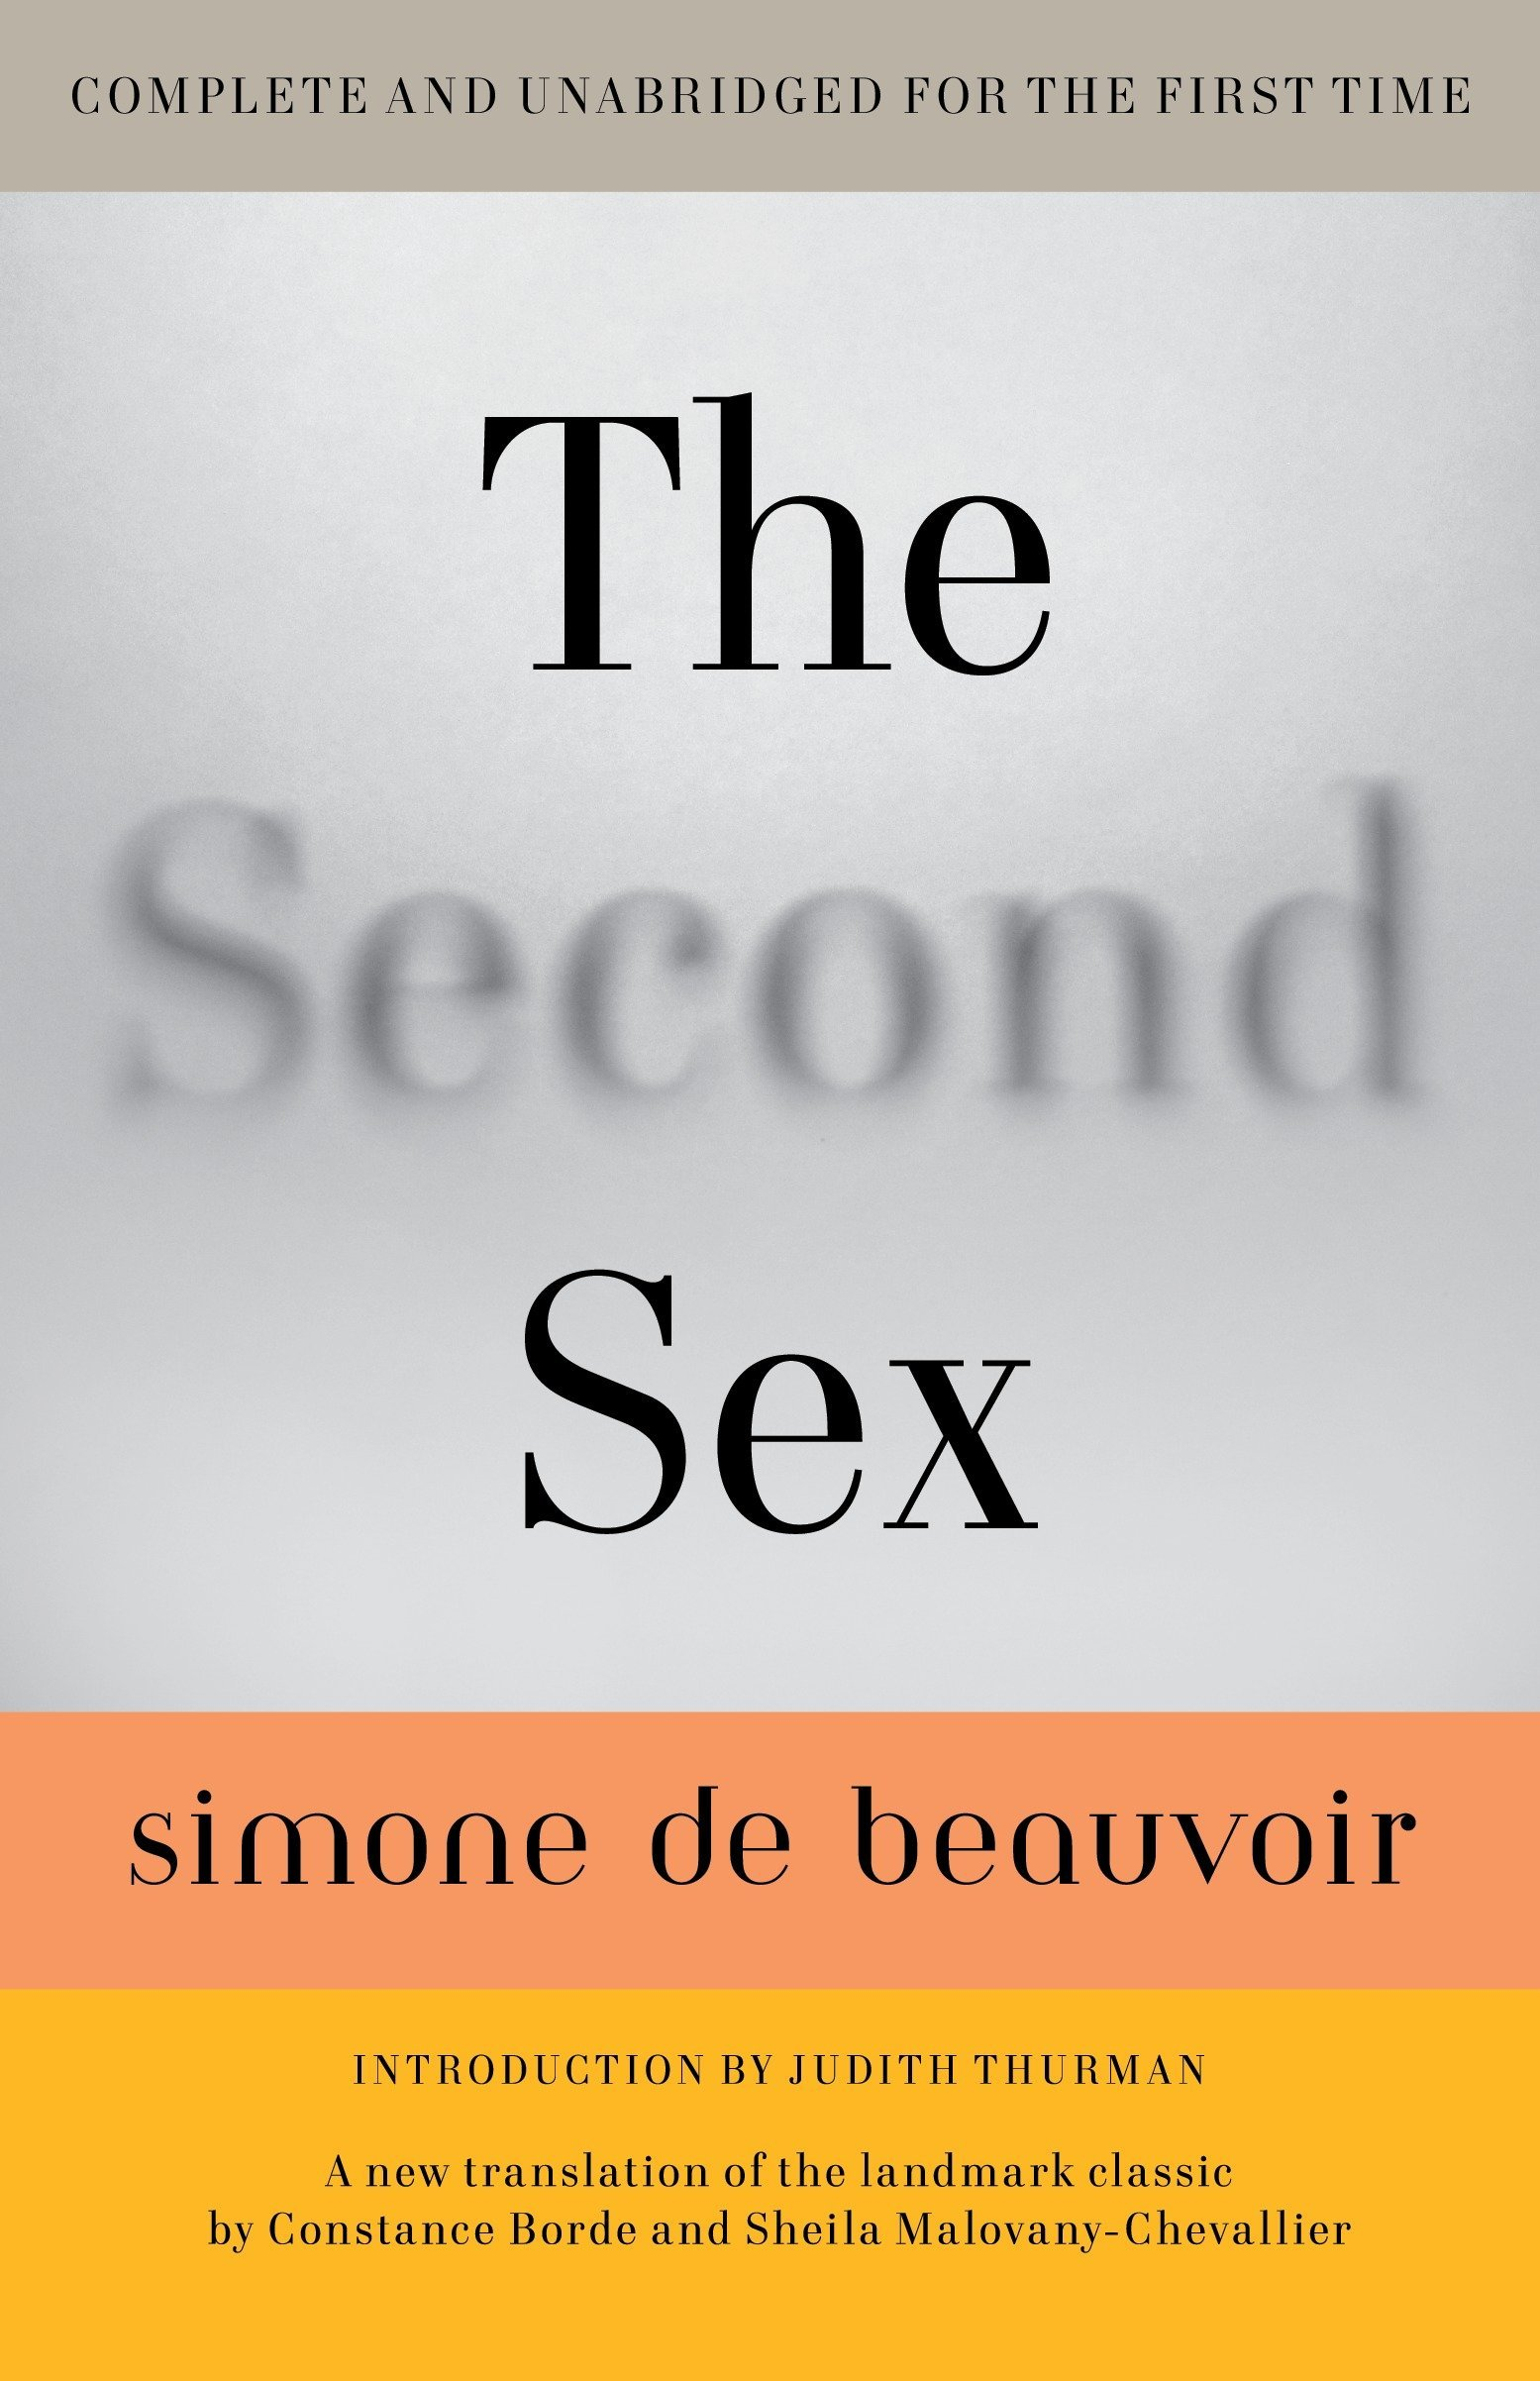 The secondary sex simone de beauvoir